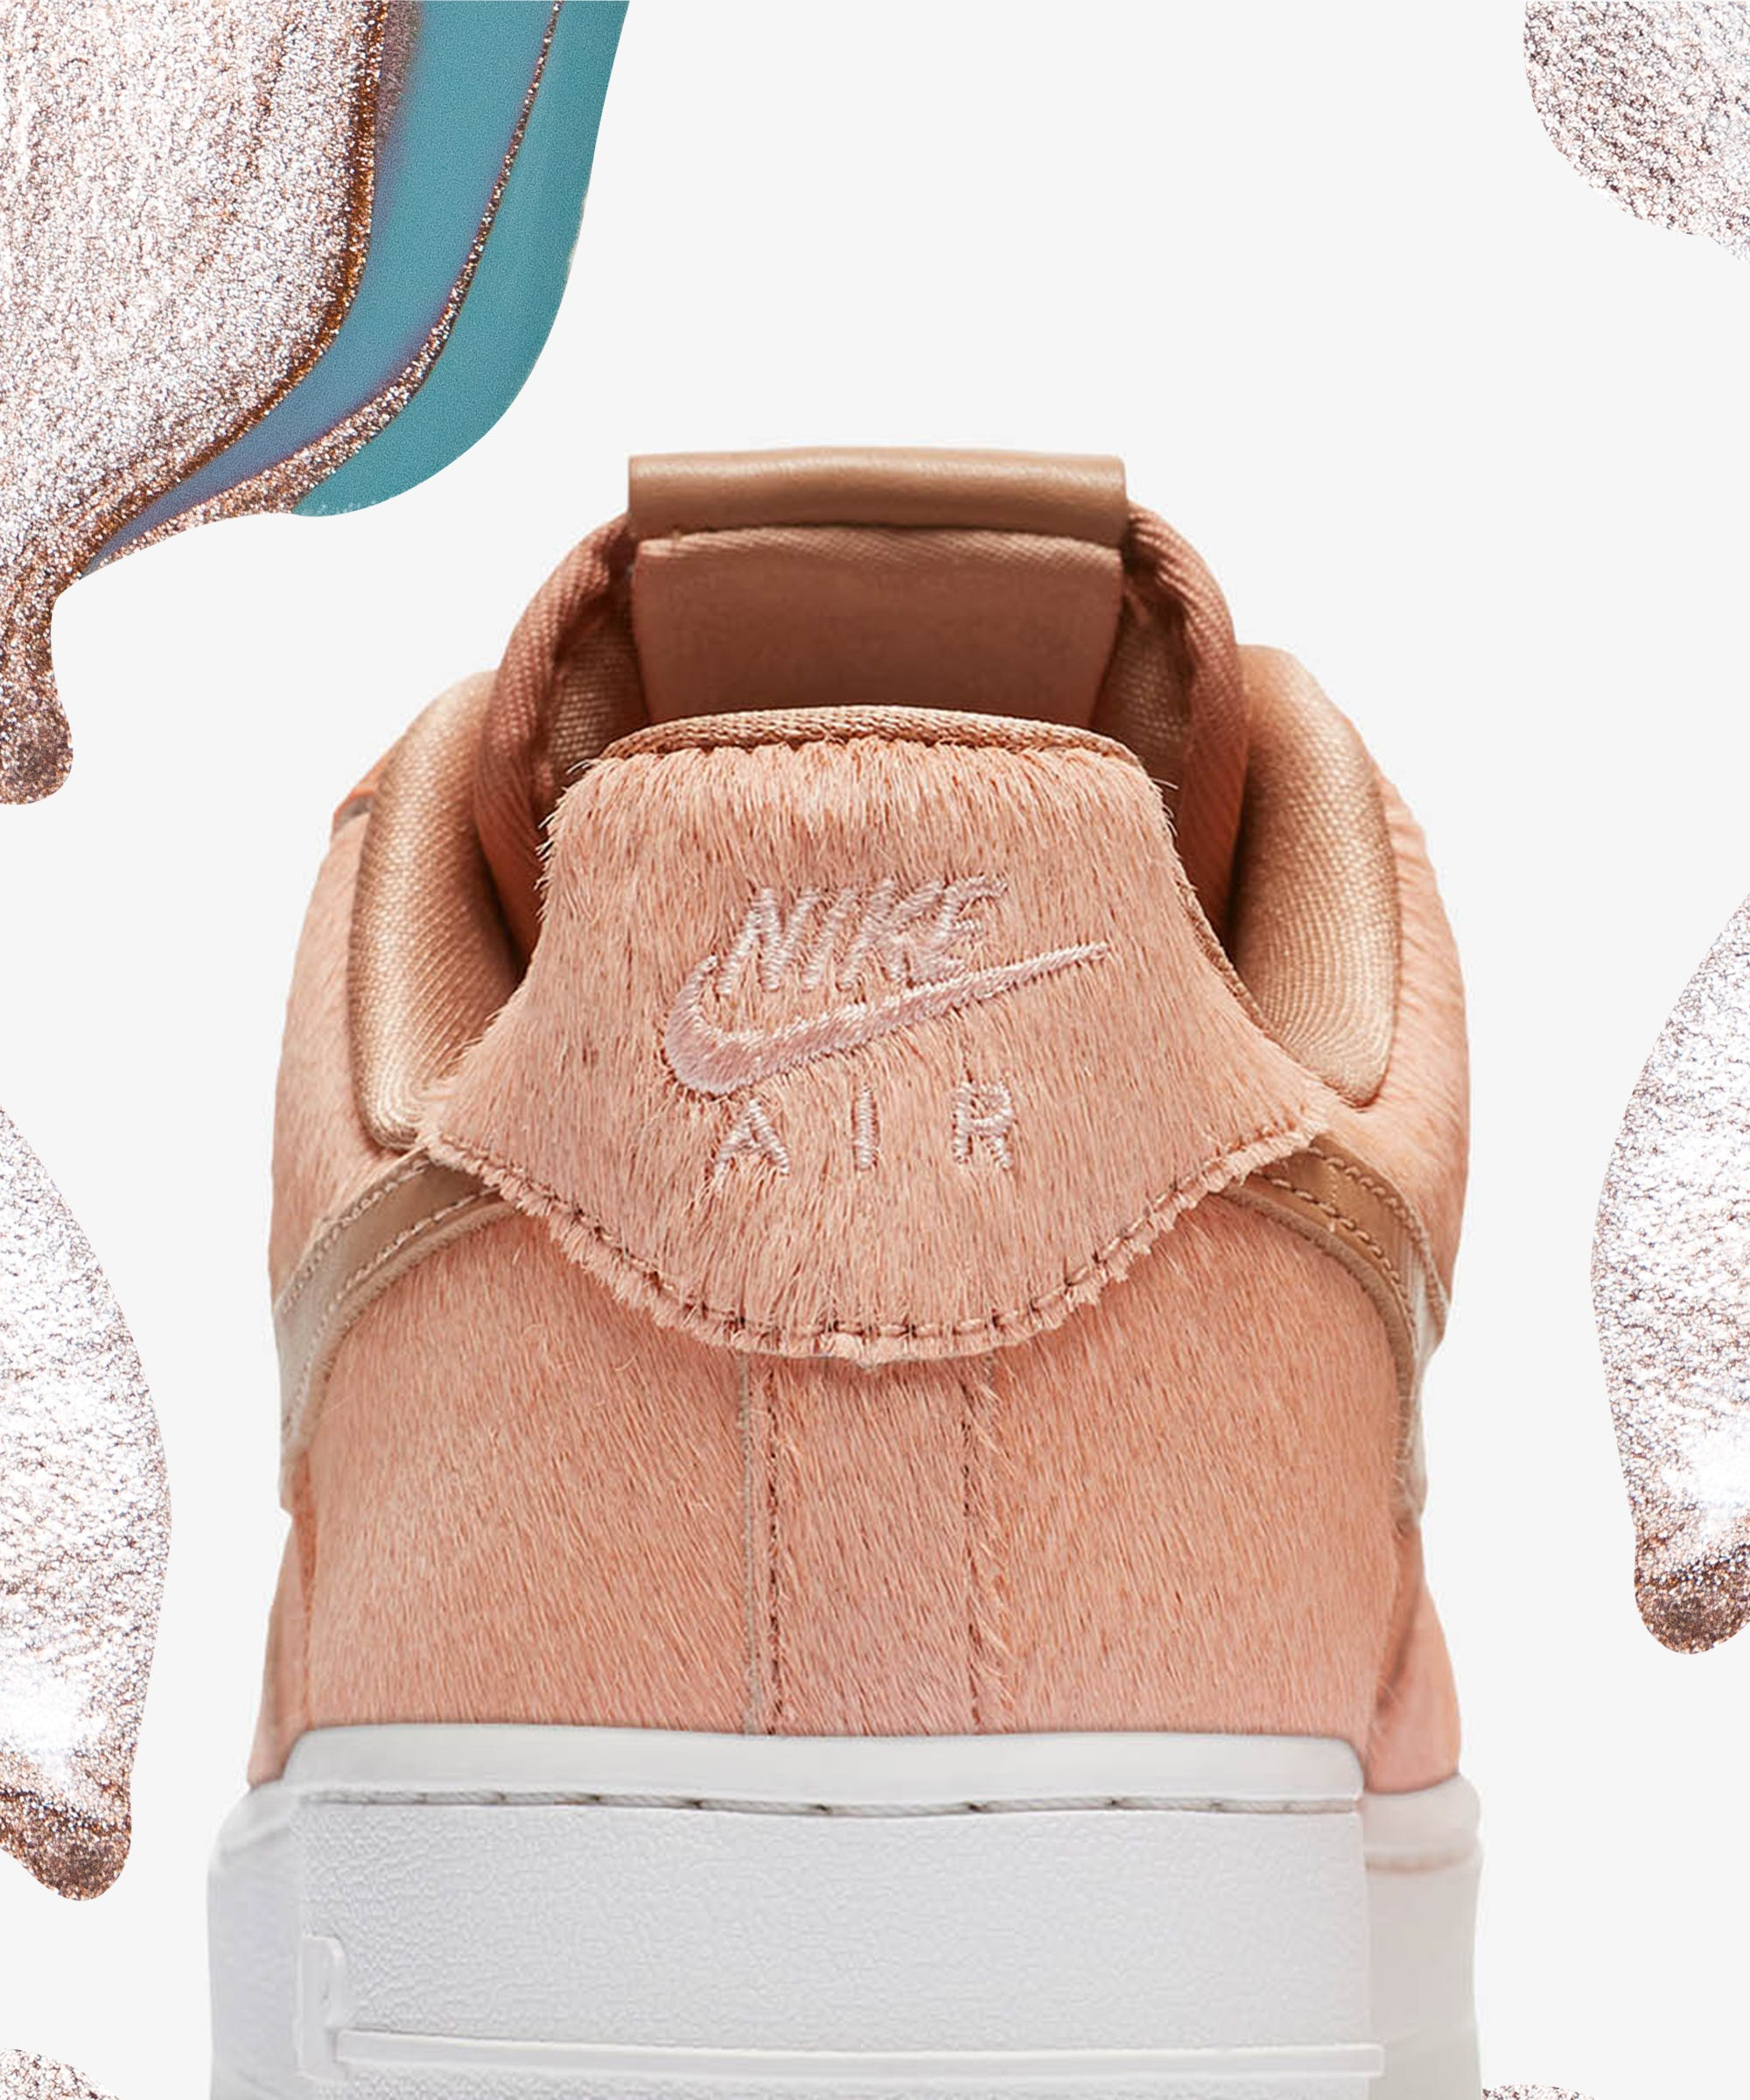 59987518fac Nike Is Reinventing How You Shop For Limited Edition Products